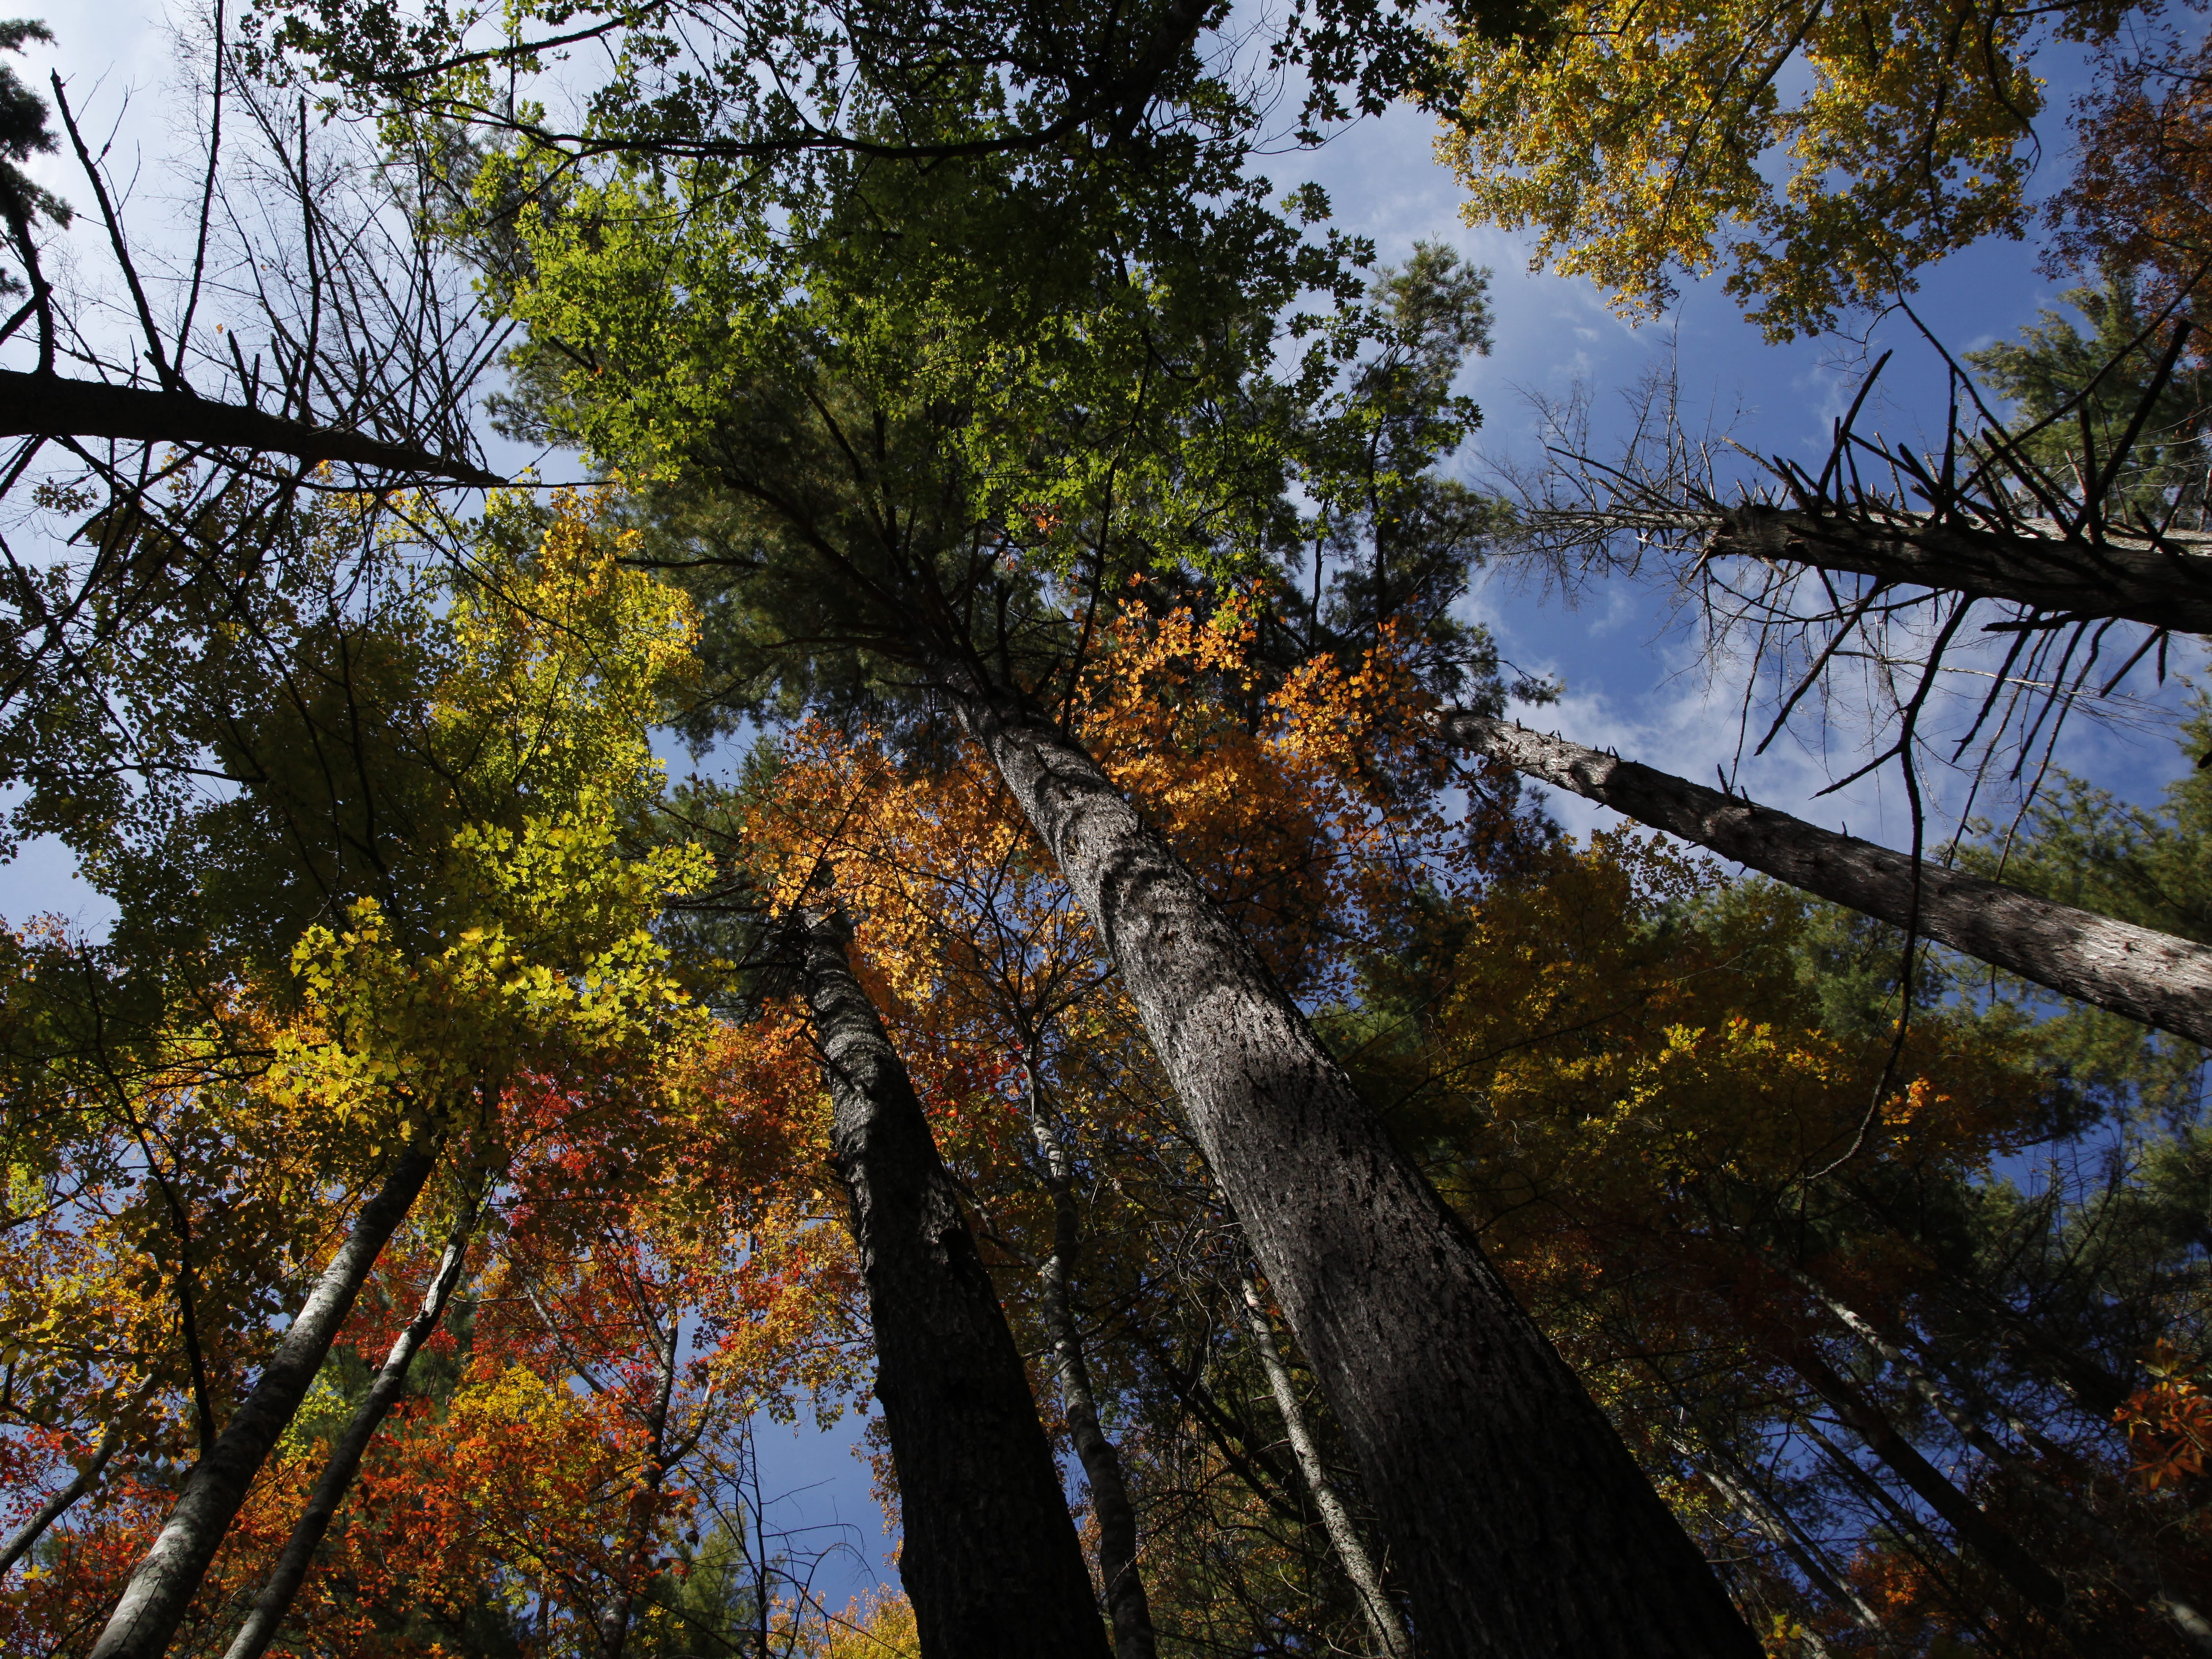 Maples and chestnut oaks display an array of Fall colors on the Crooked Arm Ridge Trail section of the 8.5 mile Rich Mountain Loop in the Great Smoky Mountains National Park near Cades Cove Wednesday, Oct. 26, 2011.  (ADAM BRIMER/NEWS SENTINEL)